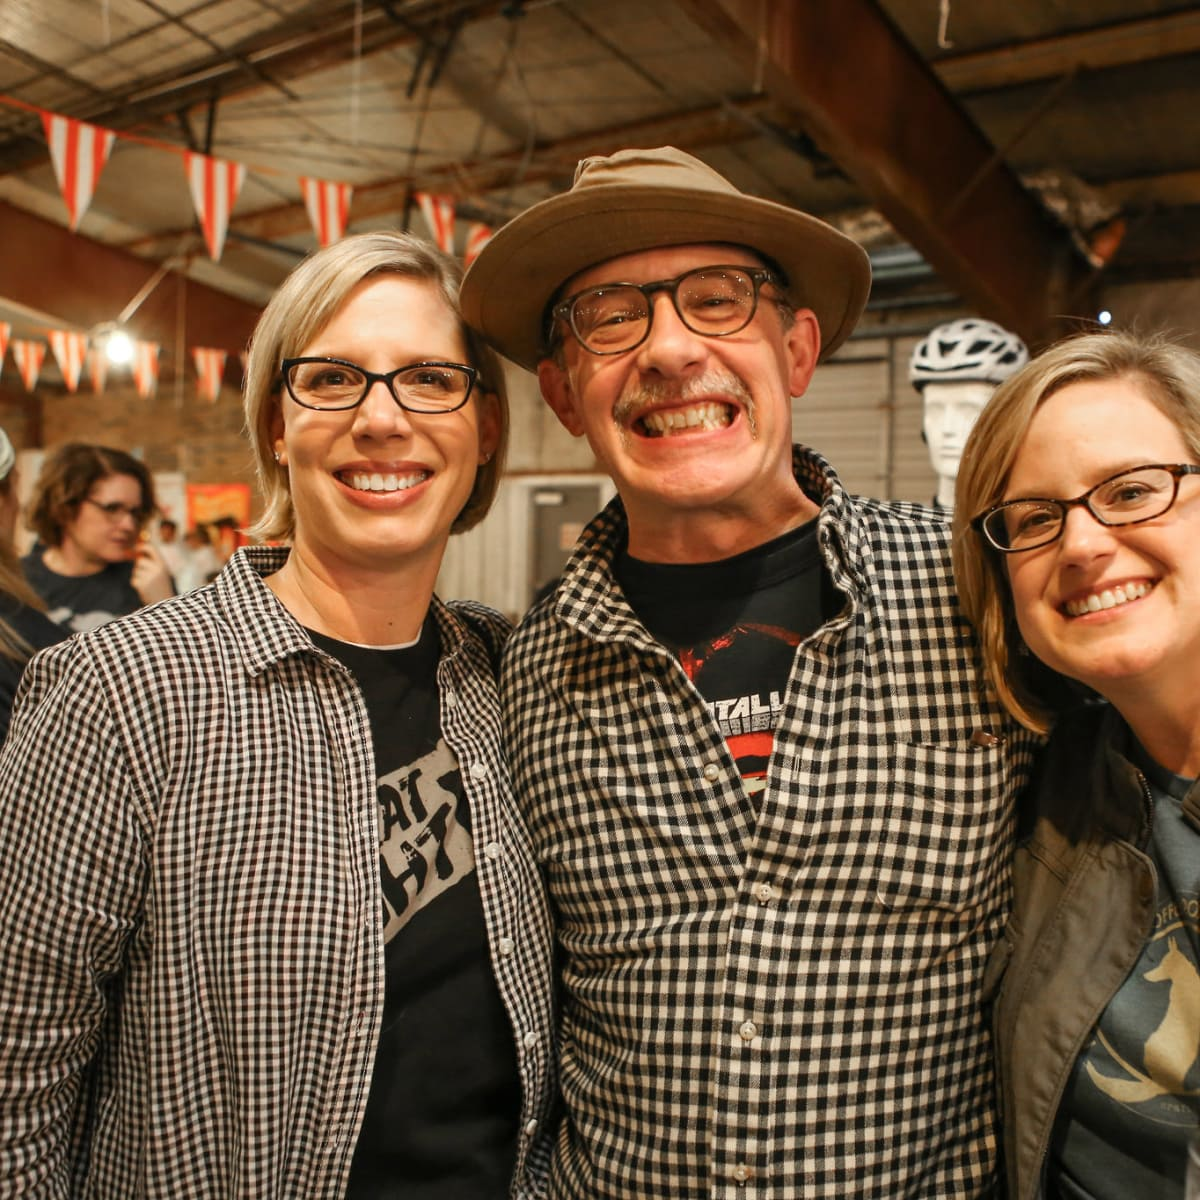 Courtney Luscher, Brian Luscher, and Marta Sprague at Meat Fight 2015